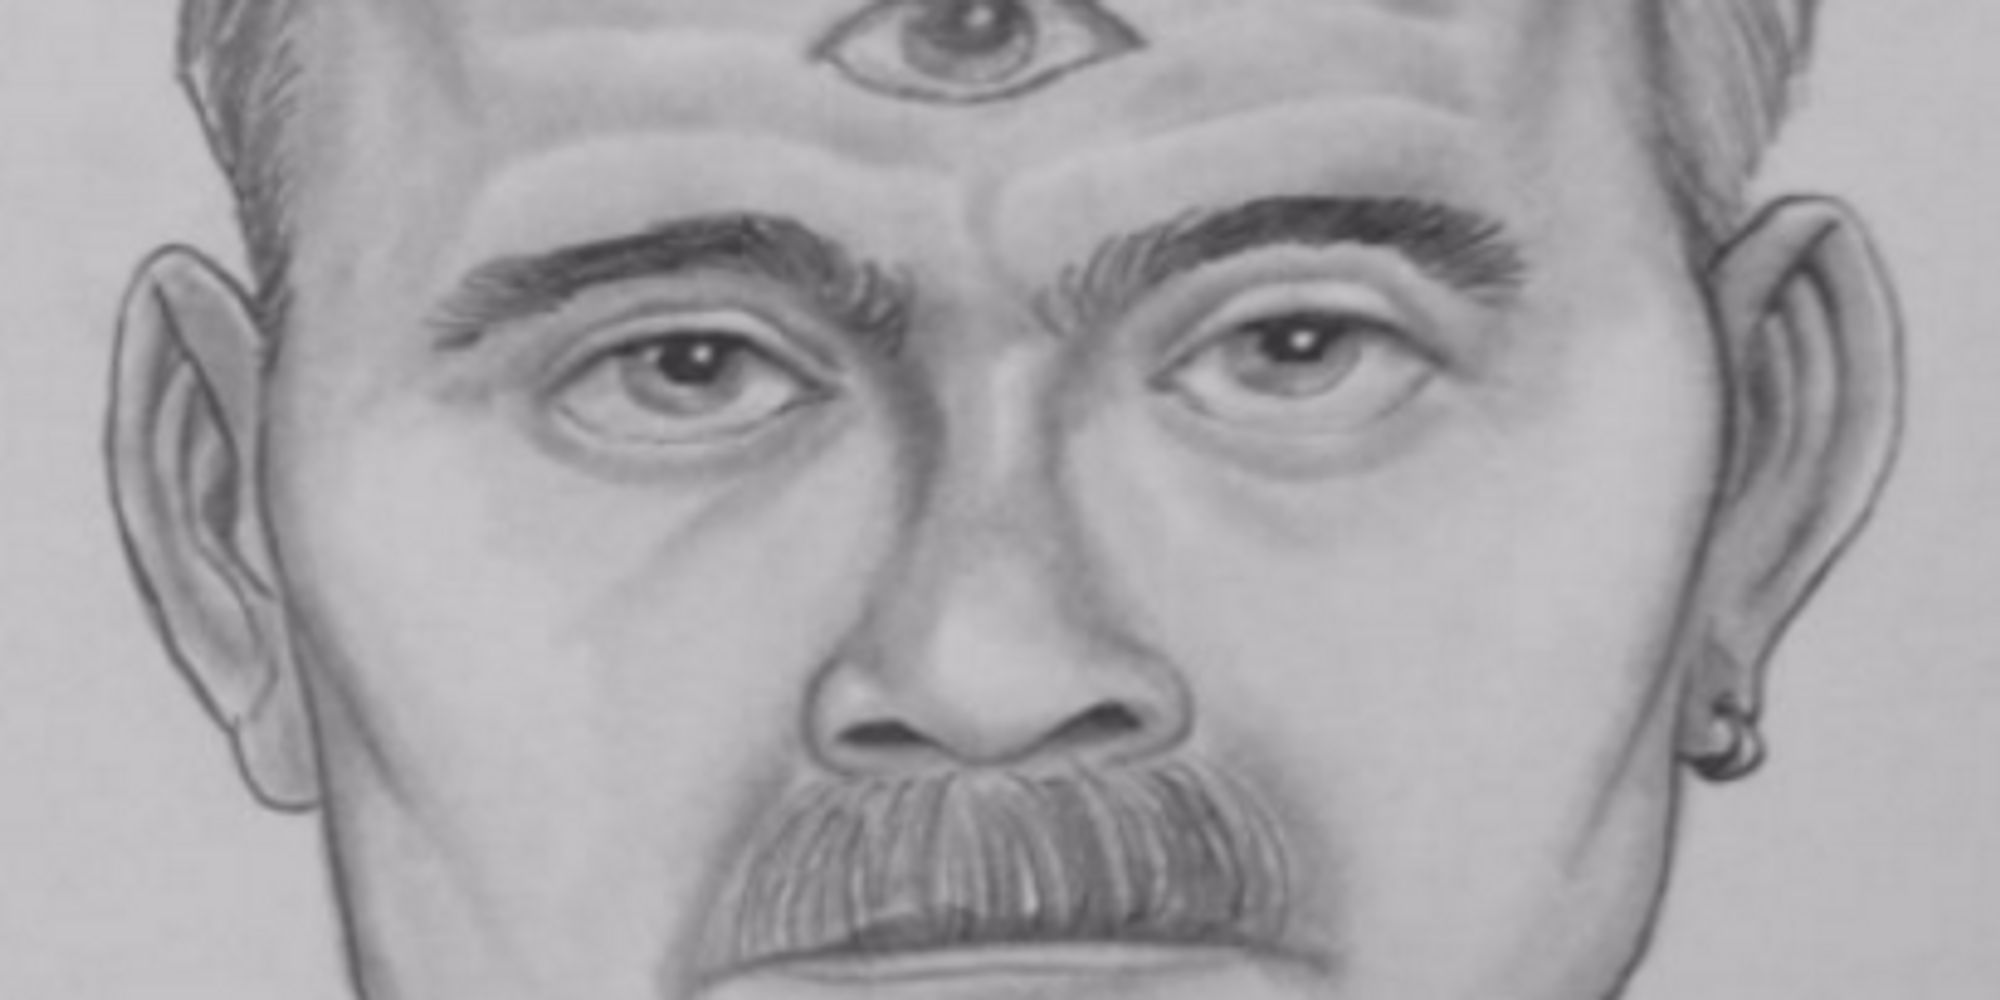 Police Hunt Child Kidnap Suspect With Third Eye Tattooed ...